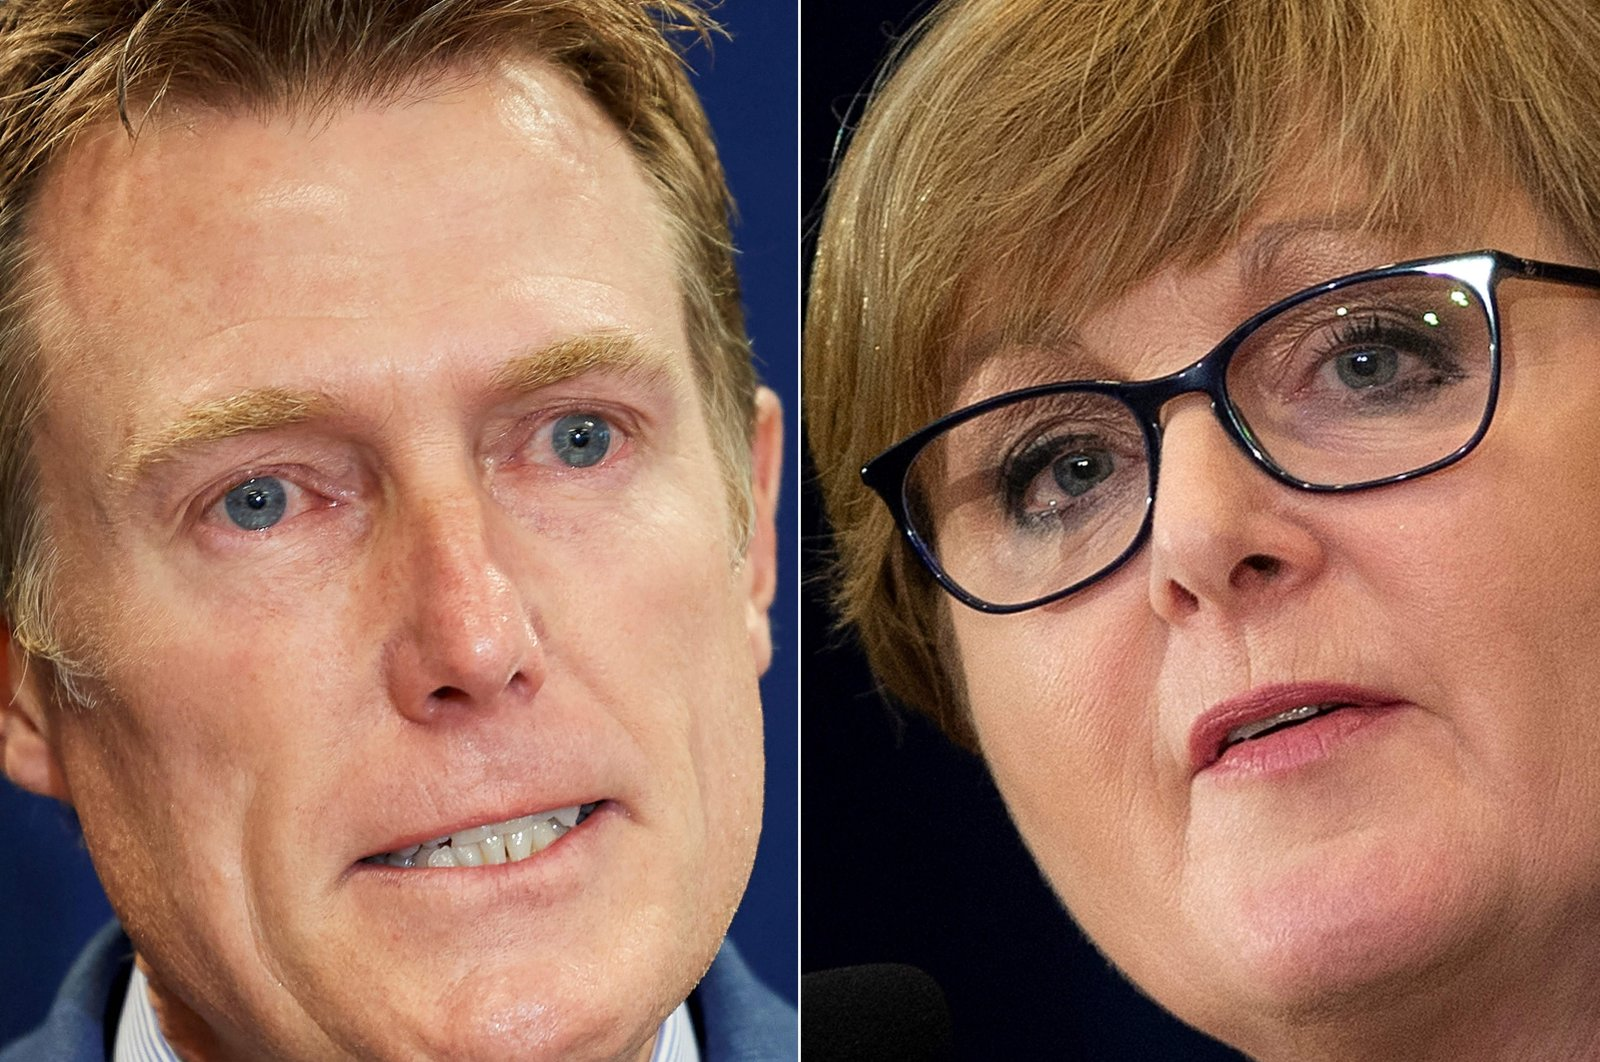 Australian then-Attorney General Christian Porter (L) at a press conference in Perth, Australia on March 3, 2021, and Australian then-Defense Minister Linda Reynolds (R) at a press conference with the U.S. State Department following the 30th AUSMIN, Washington, D.C., U.S., July 28, 2020. This combination of file photos was created on March 29, 2021. (AFP Photo)